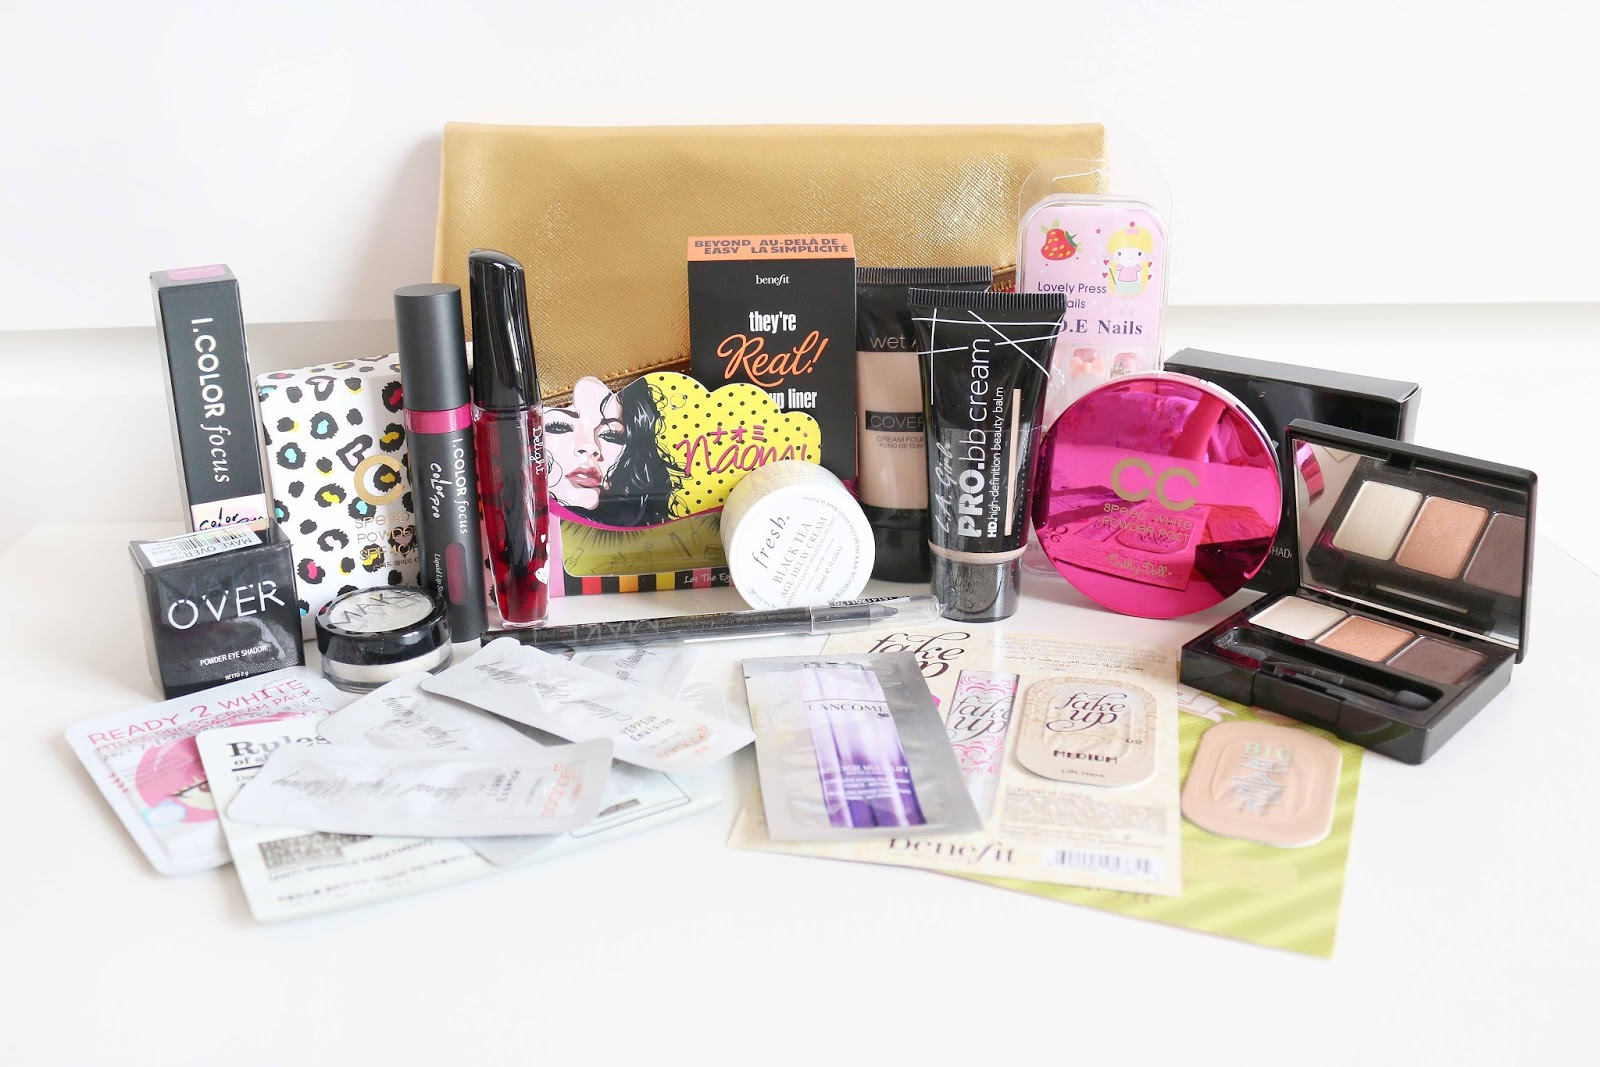 jean milka, beauty blog, giveaway, indonesia, makeup, give away, benefit, lancome, etude house, make over, la girl, cathy doll, tony moly, max factor, clinique, maybelline, jeanmilka